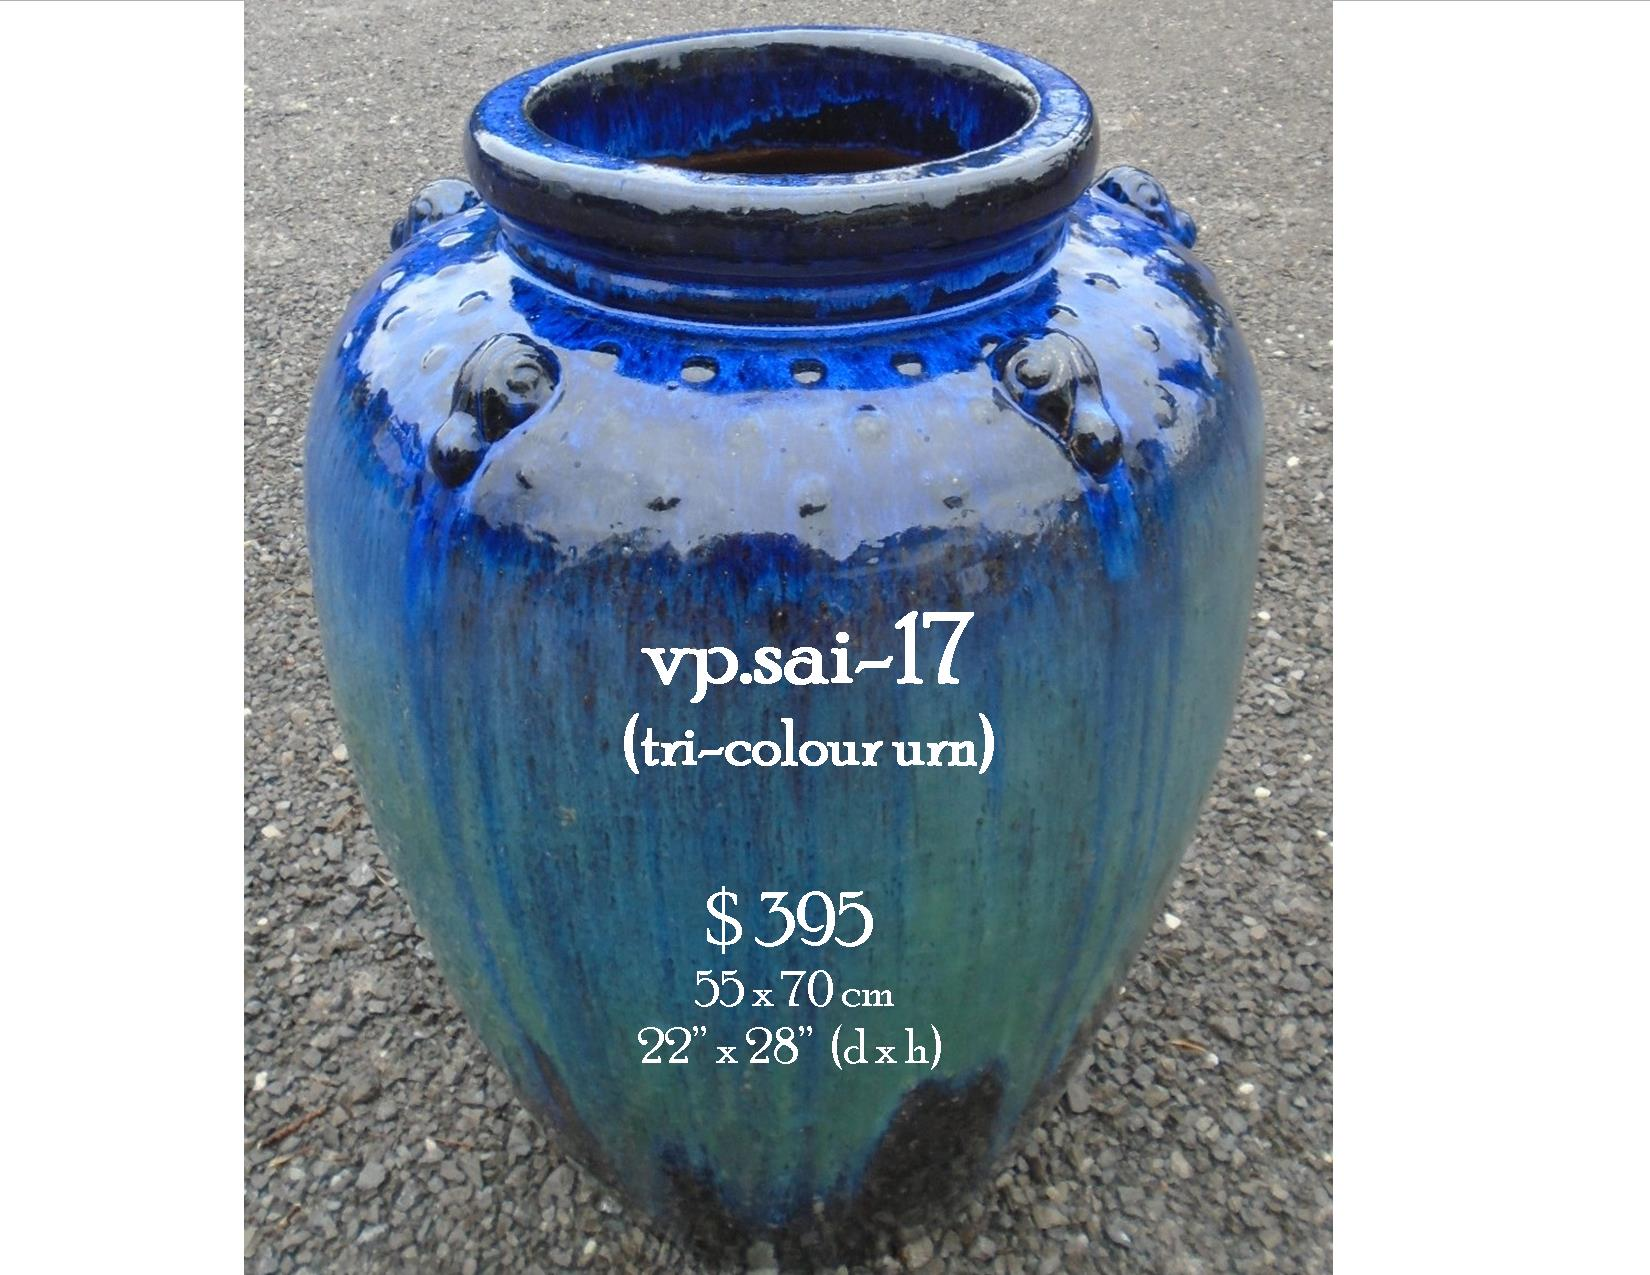 vp.sai-17  tri-colour urn